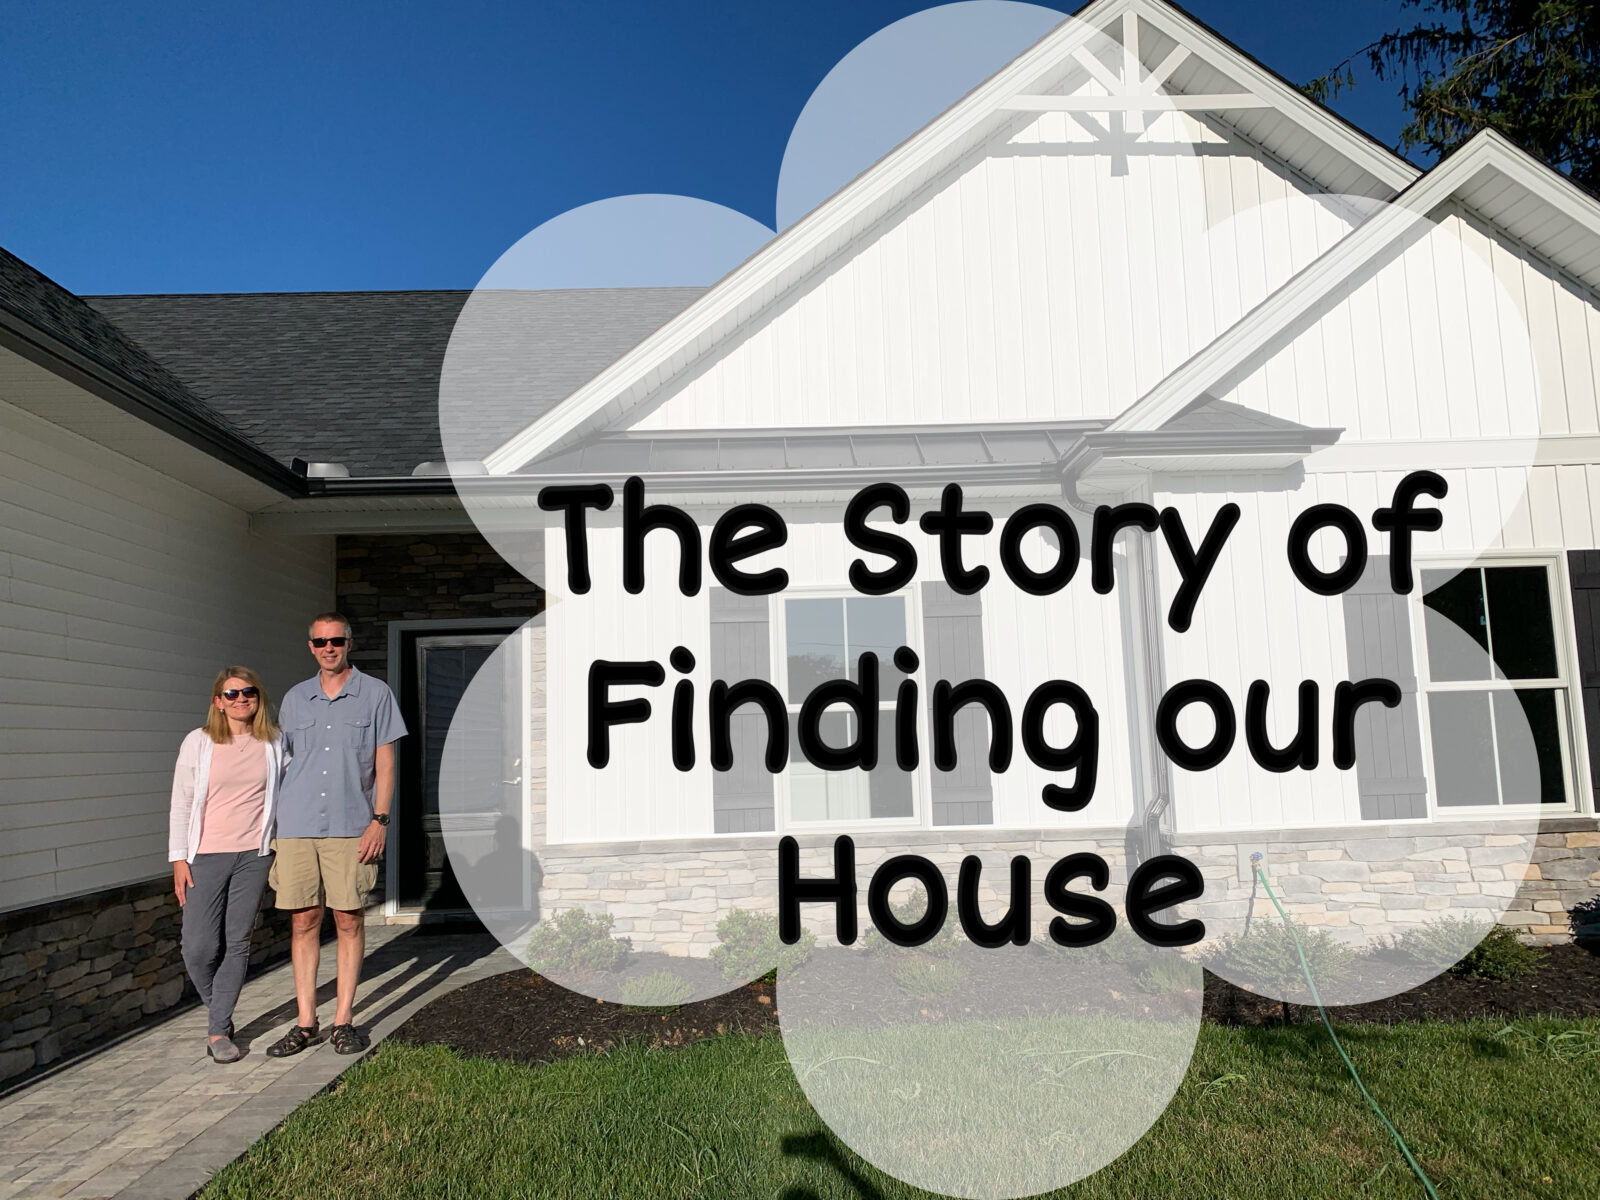 The Story of Finding our House